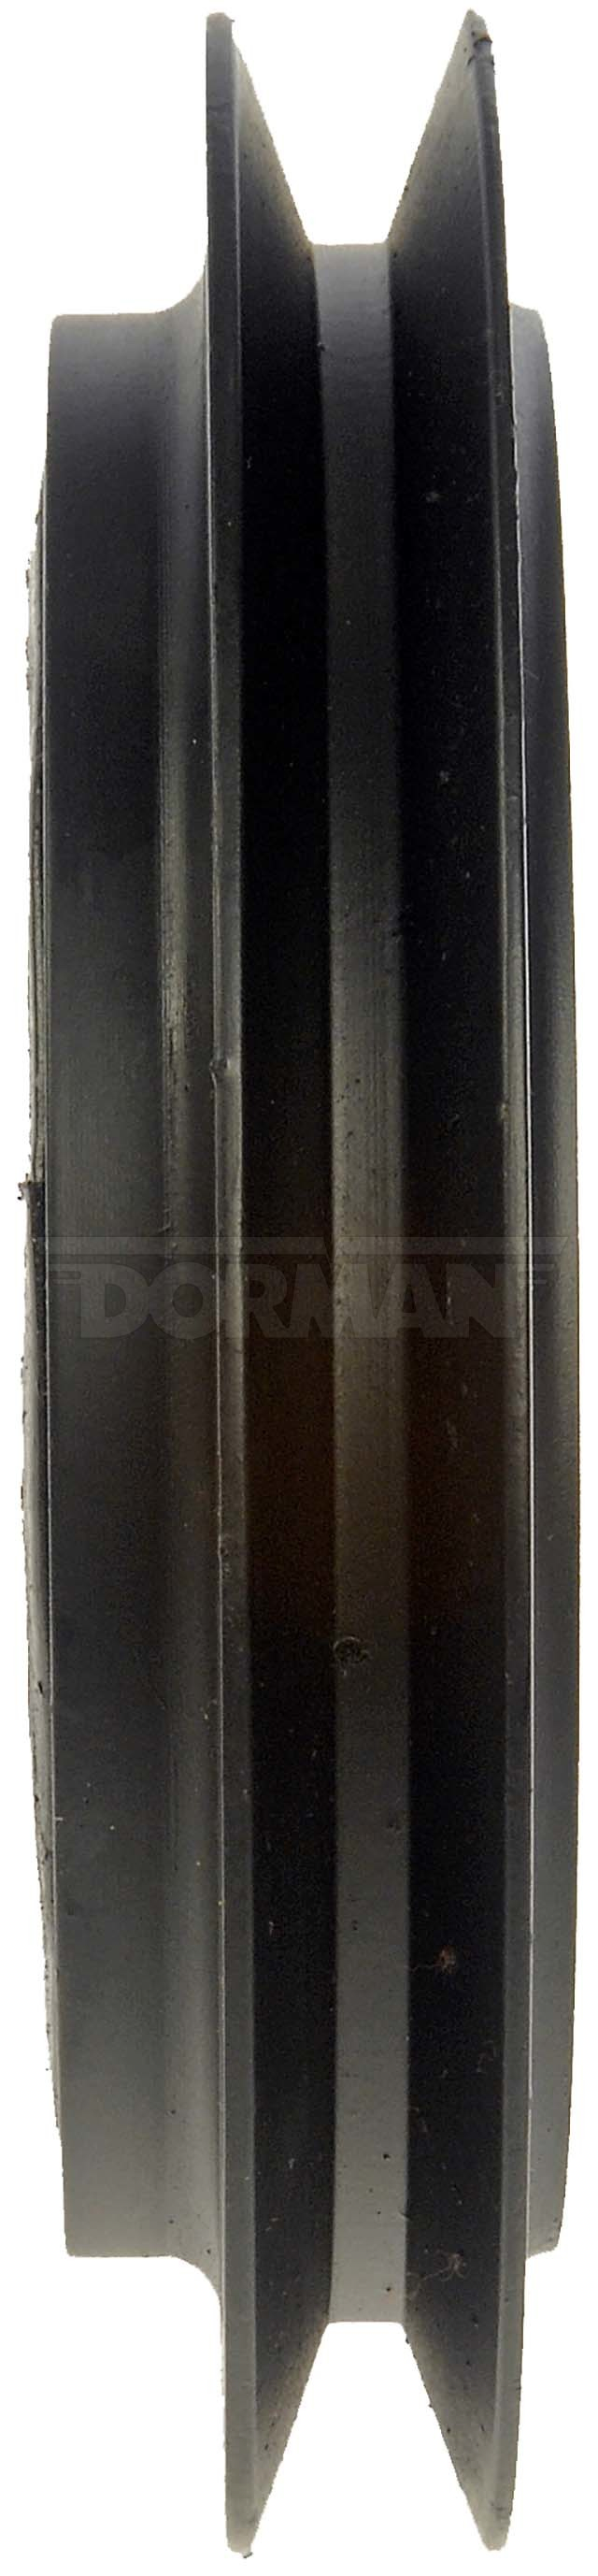 Dorman # 594-168 Engine Harmonic Balancer